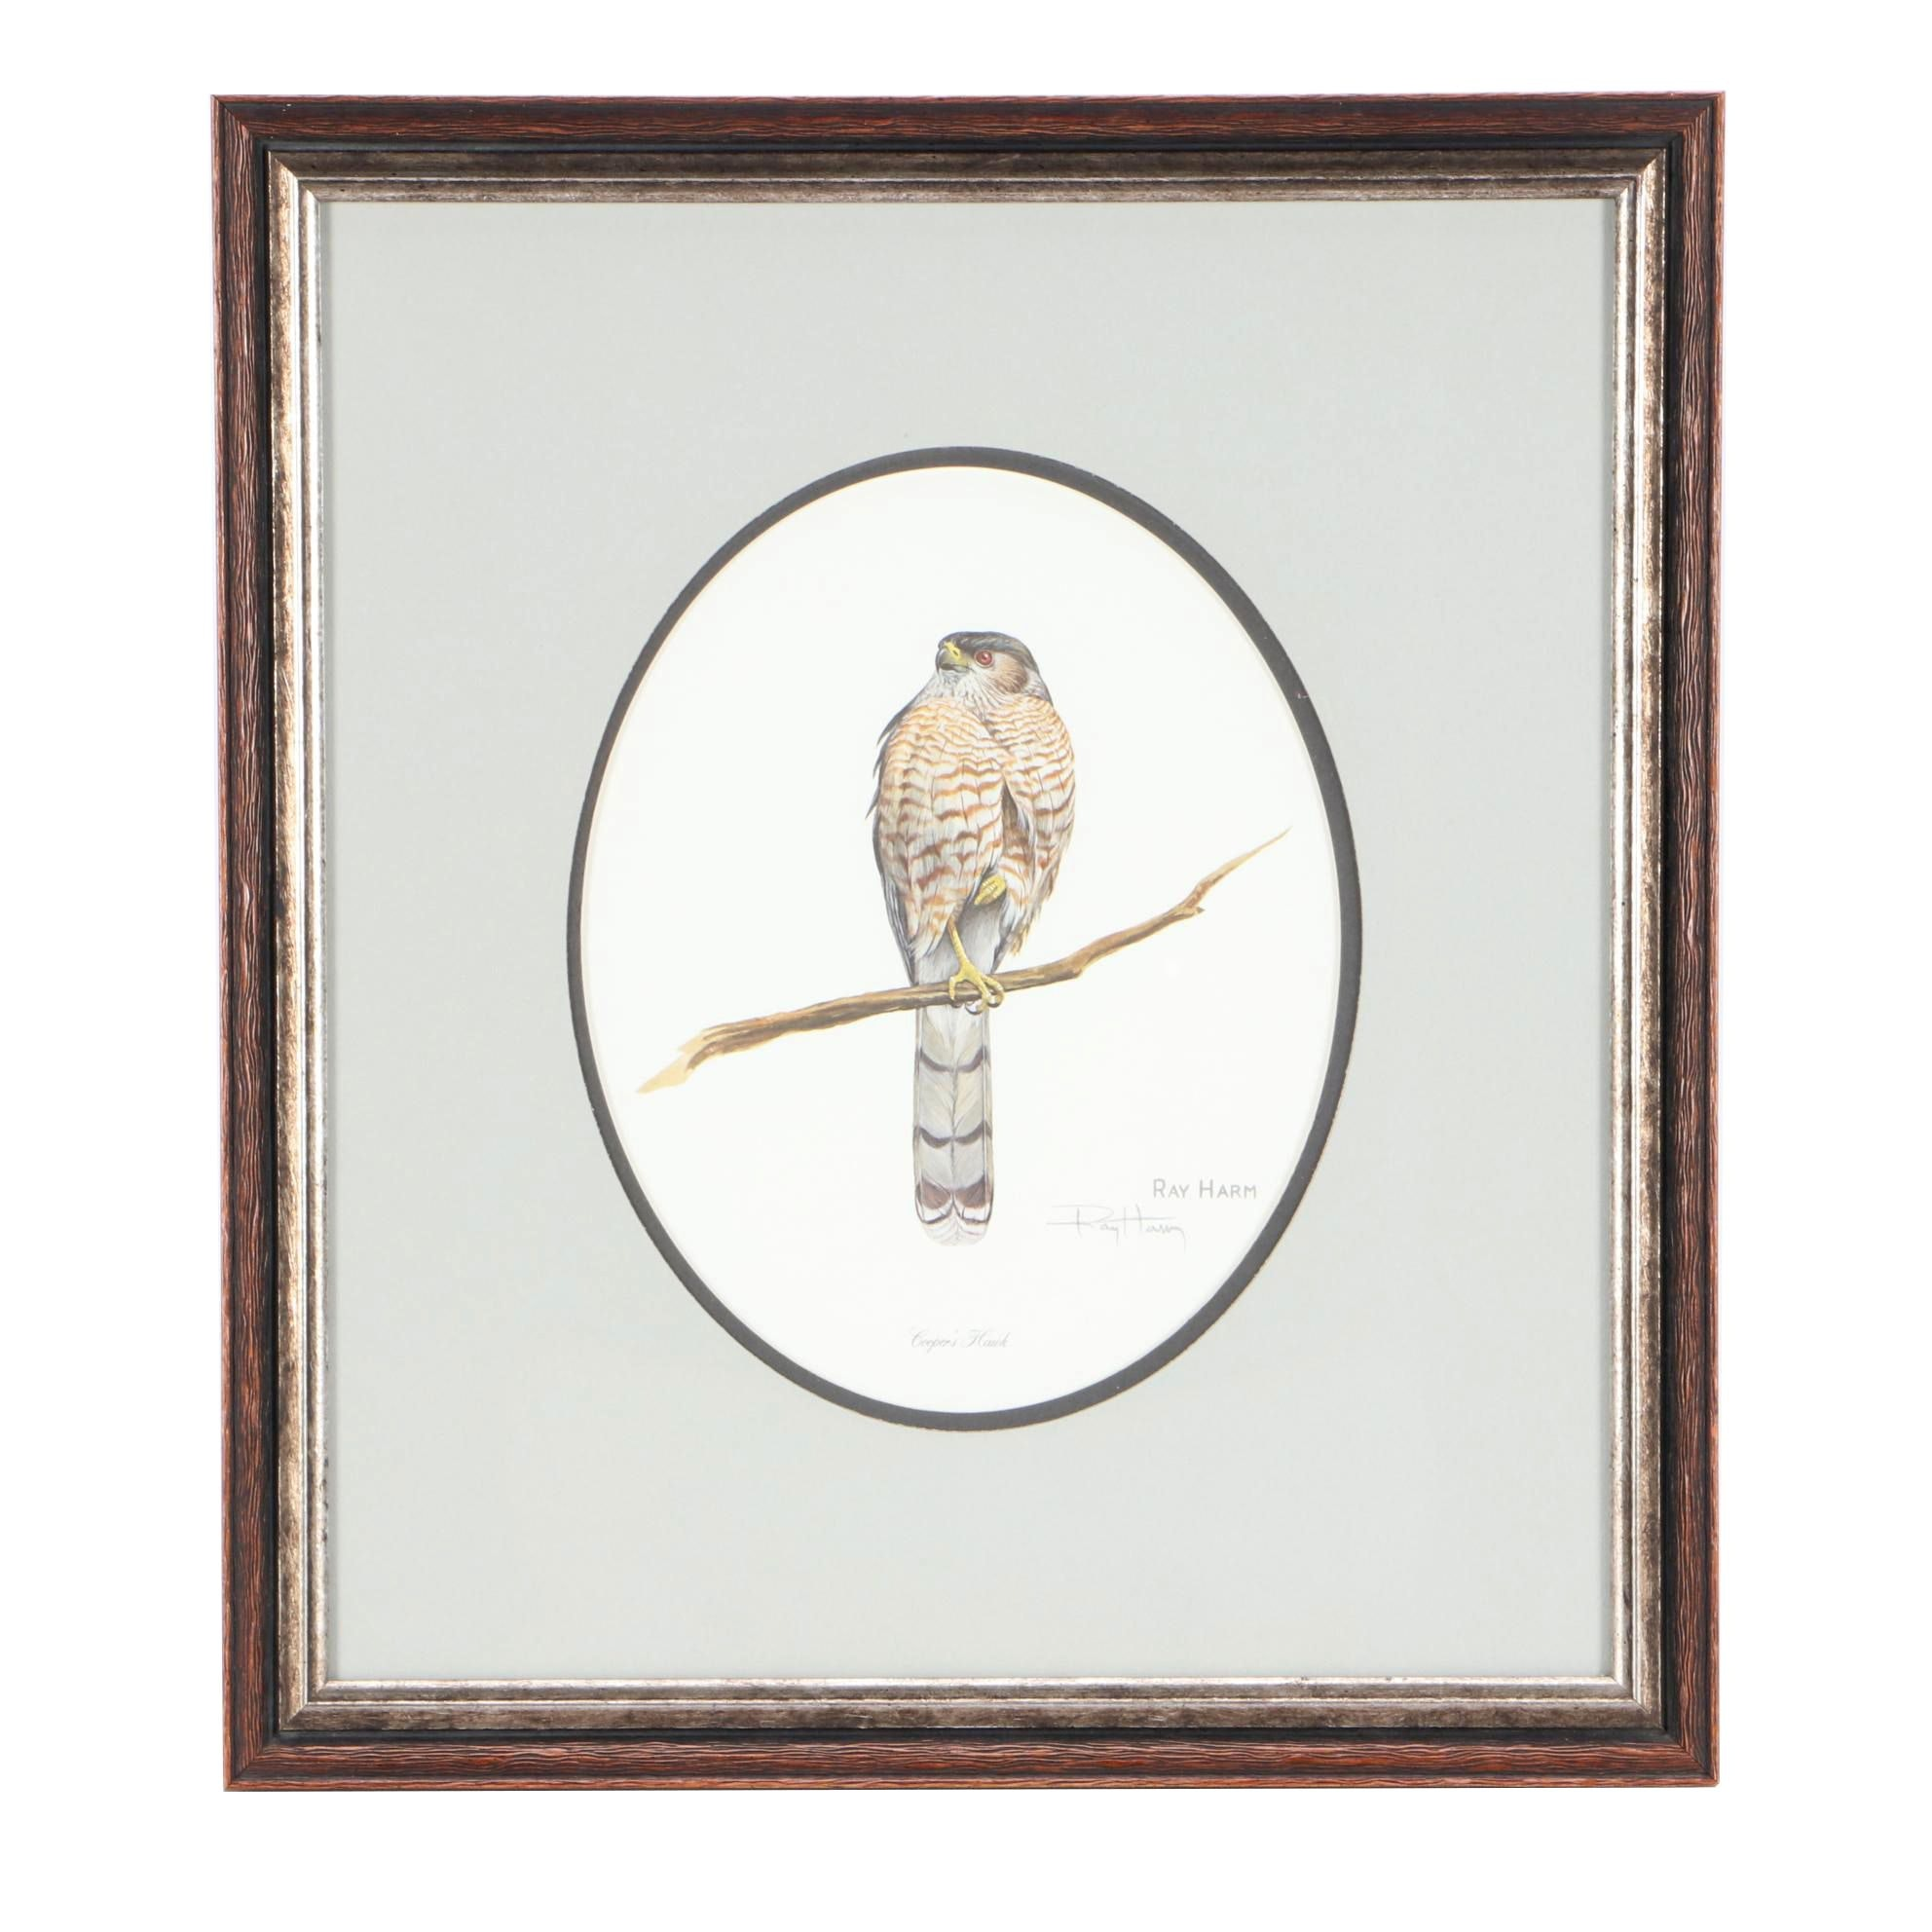 """Ray Harm Offset Lithograph Print """"Cooper's Hawk"""""""